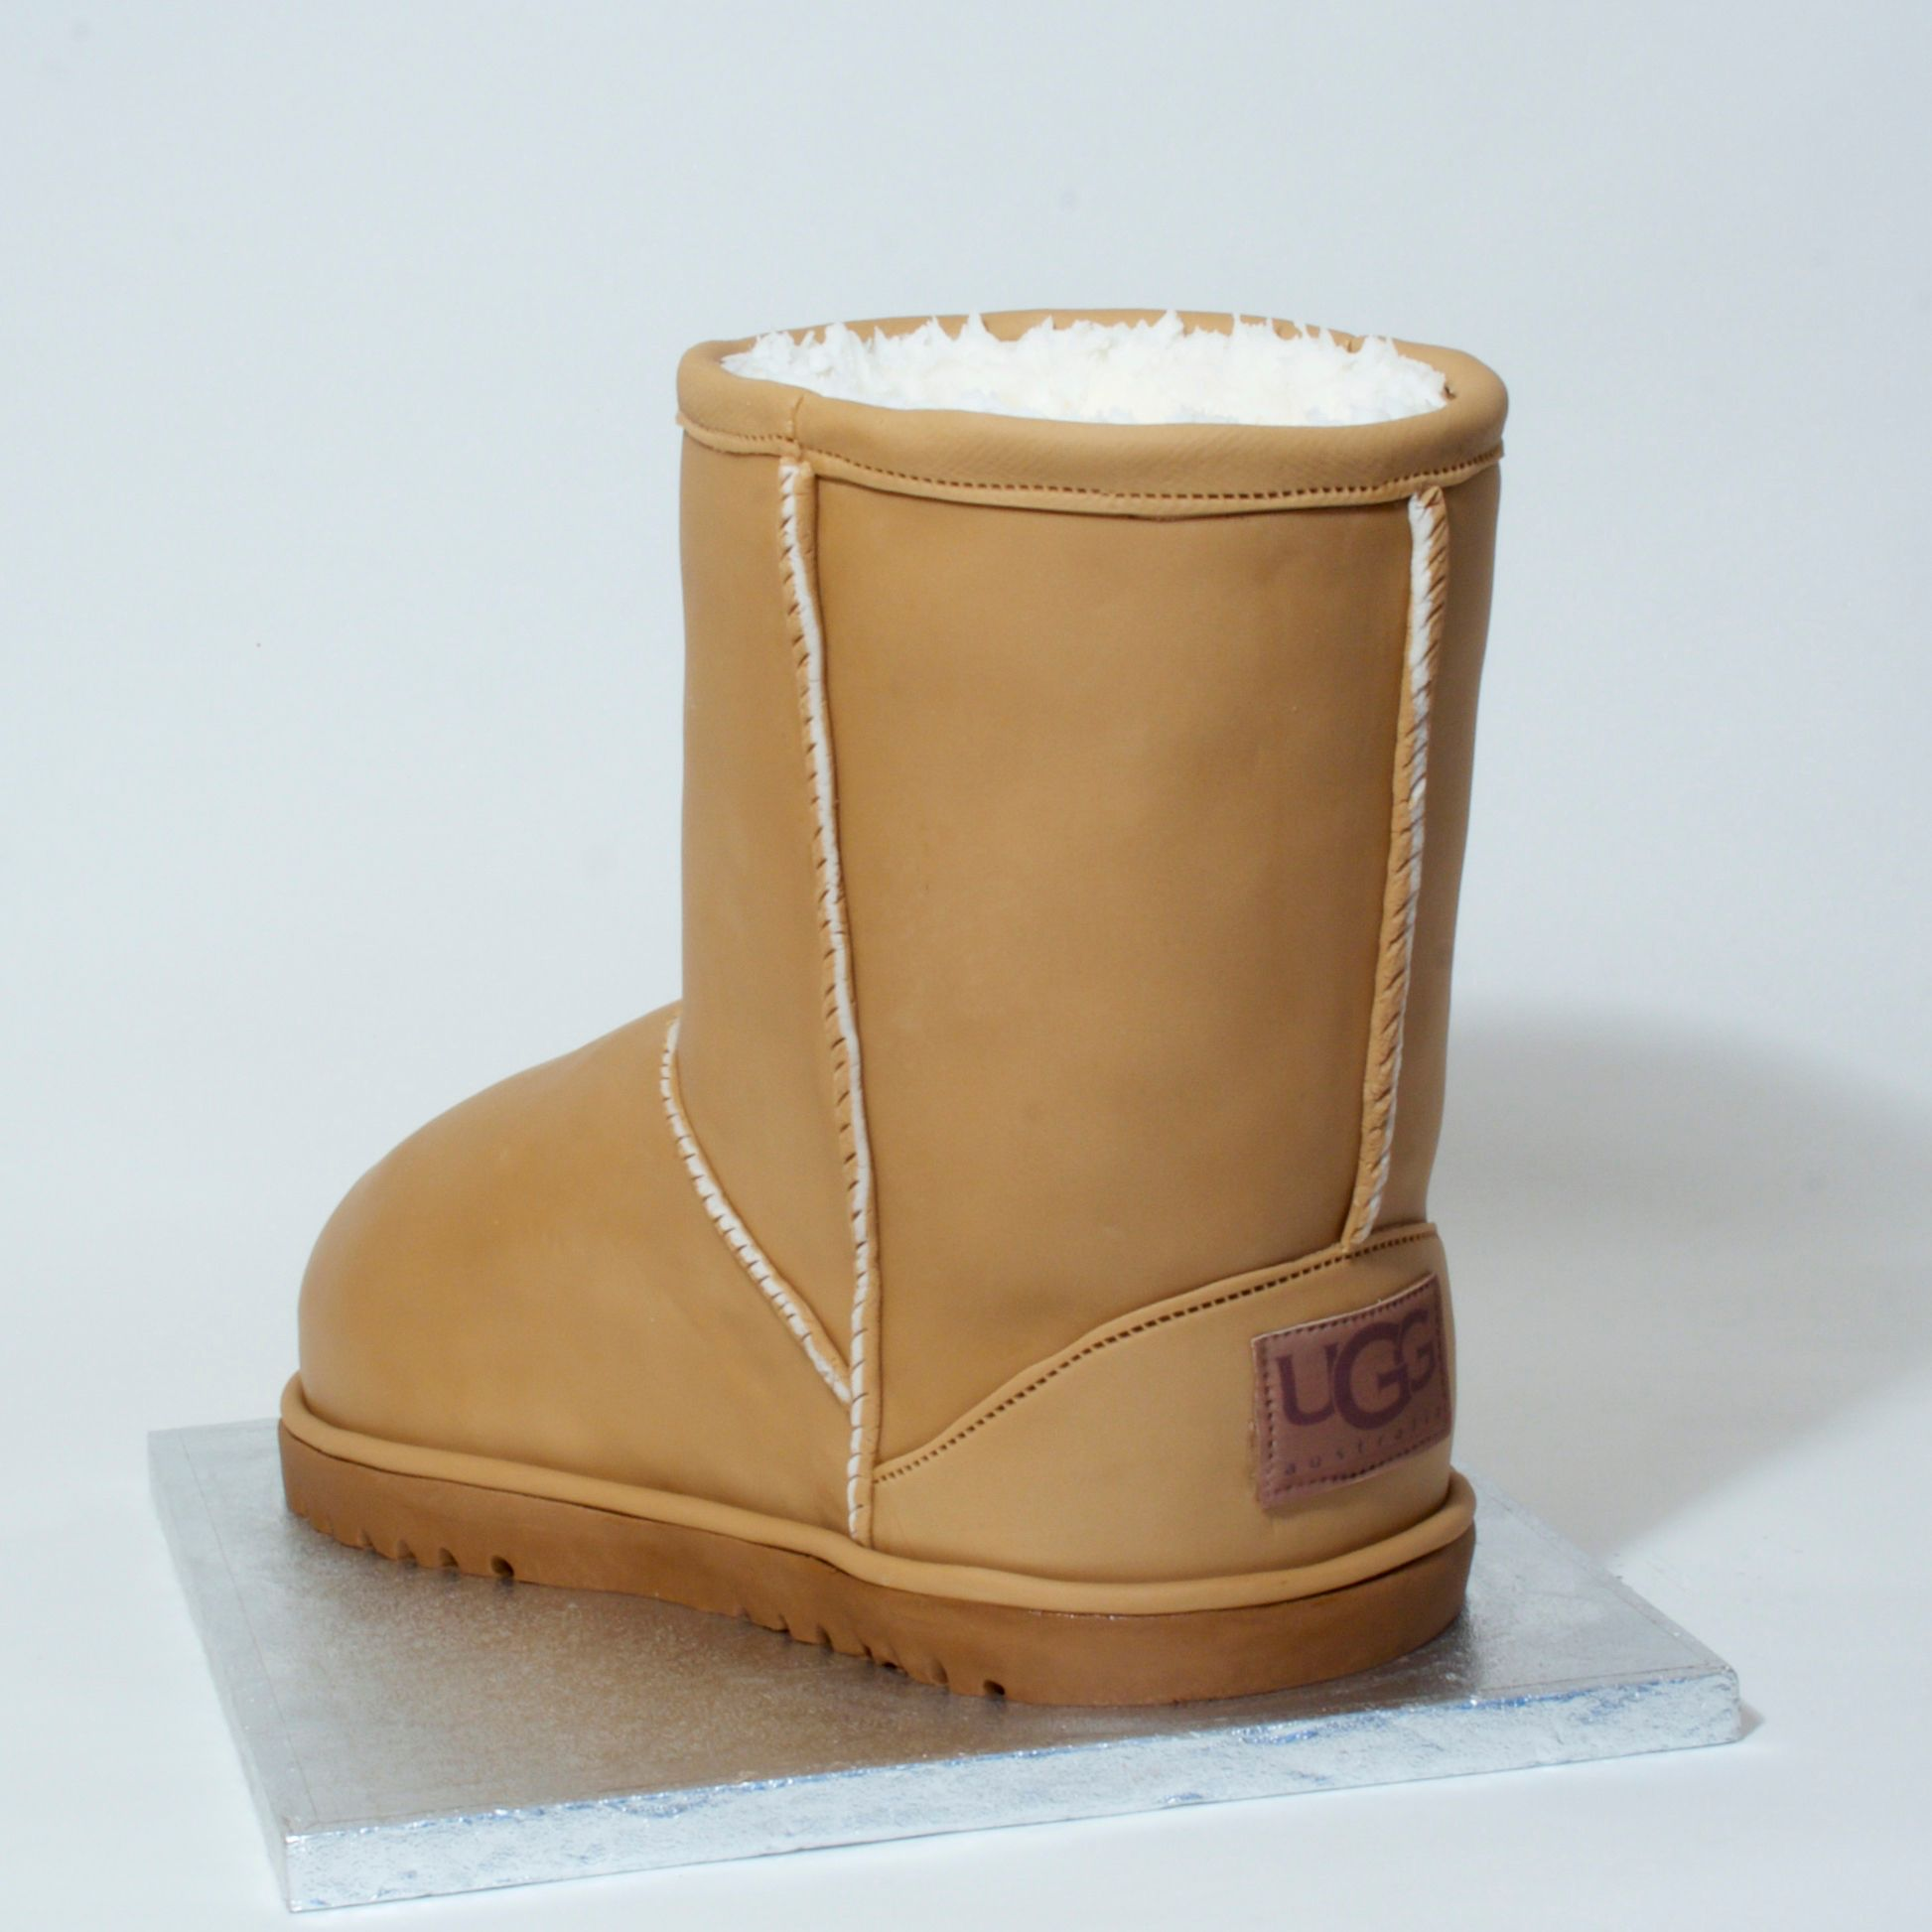 ugg classic men boot illusion cake